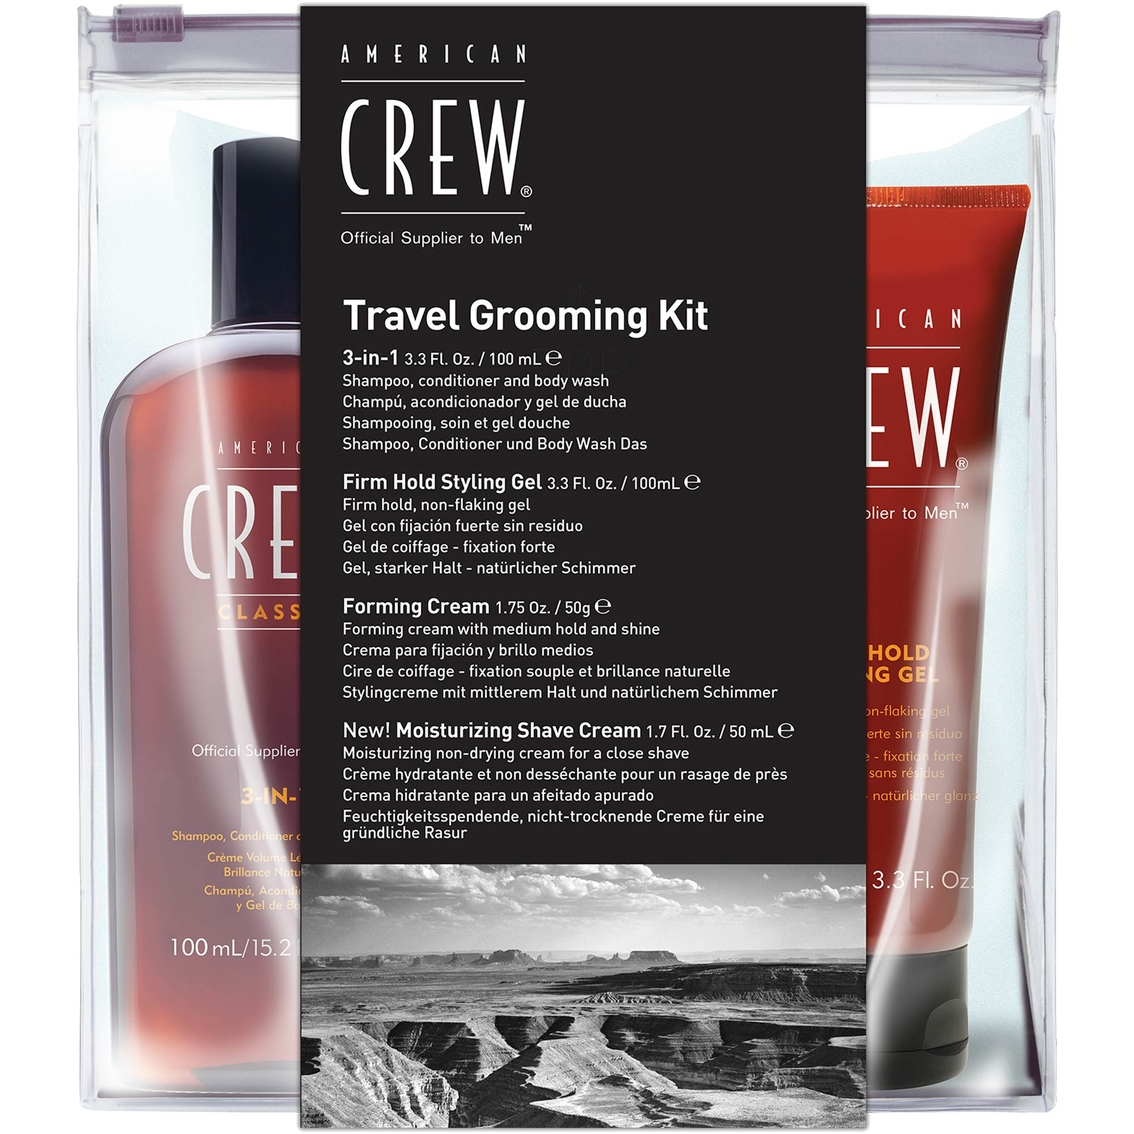 American Crew Travel Grooming Kit Men S Sets Kits Father S - 1 Und 1 Shop